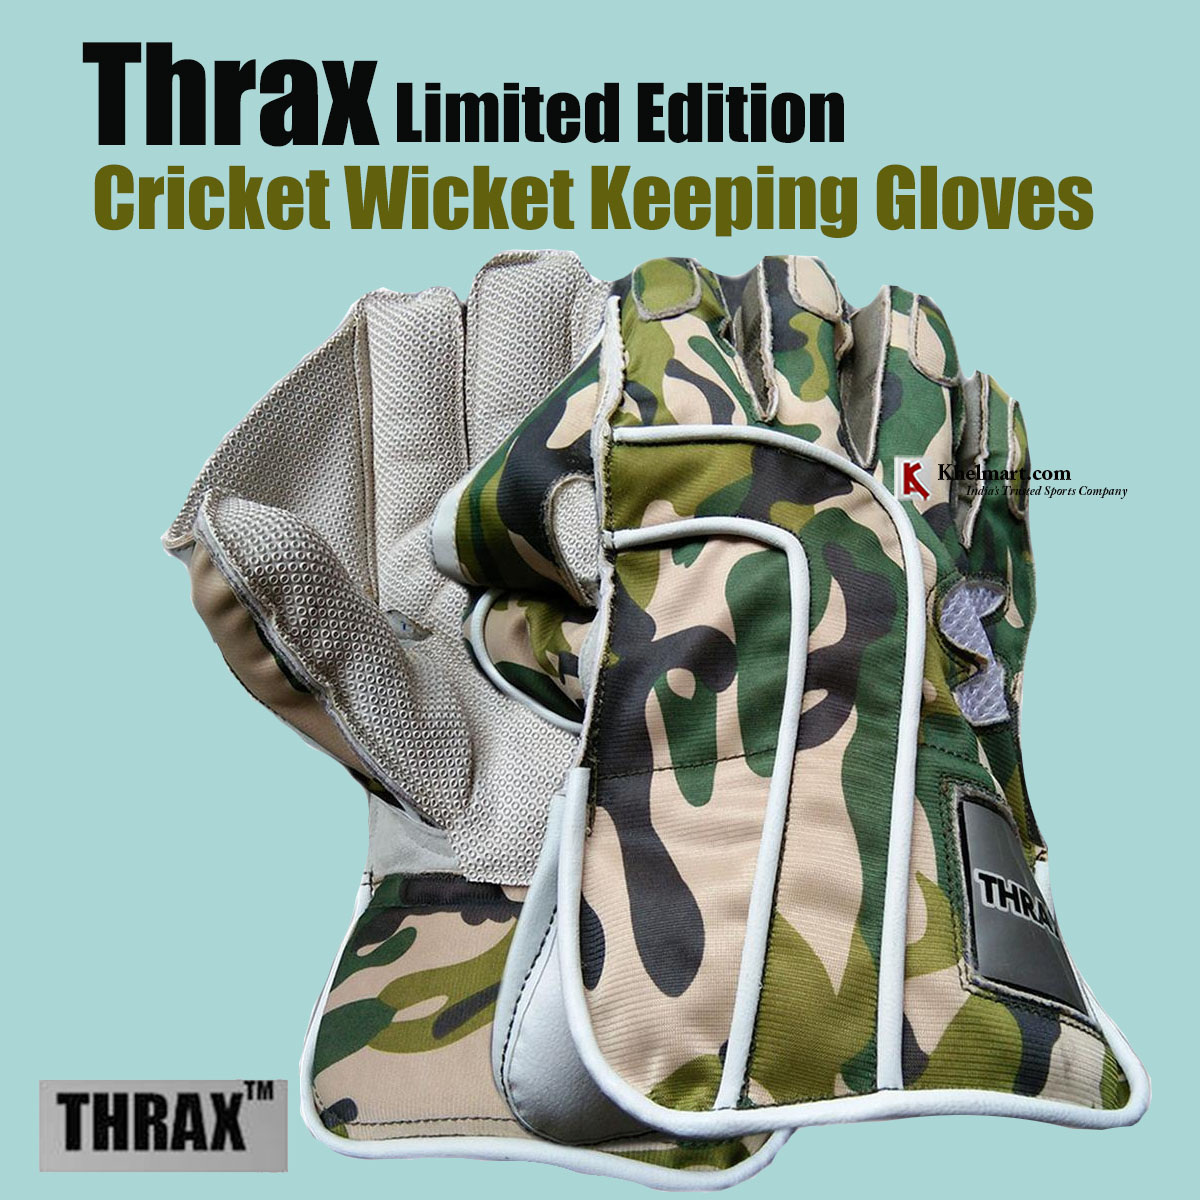 Thrax_Limited_Edition_Cricket_Wicket_Keeping_Gloves_3.jpg